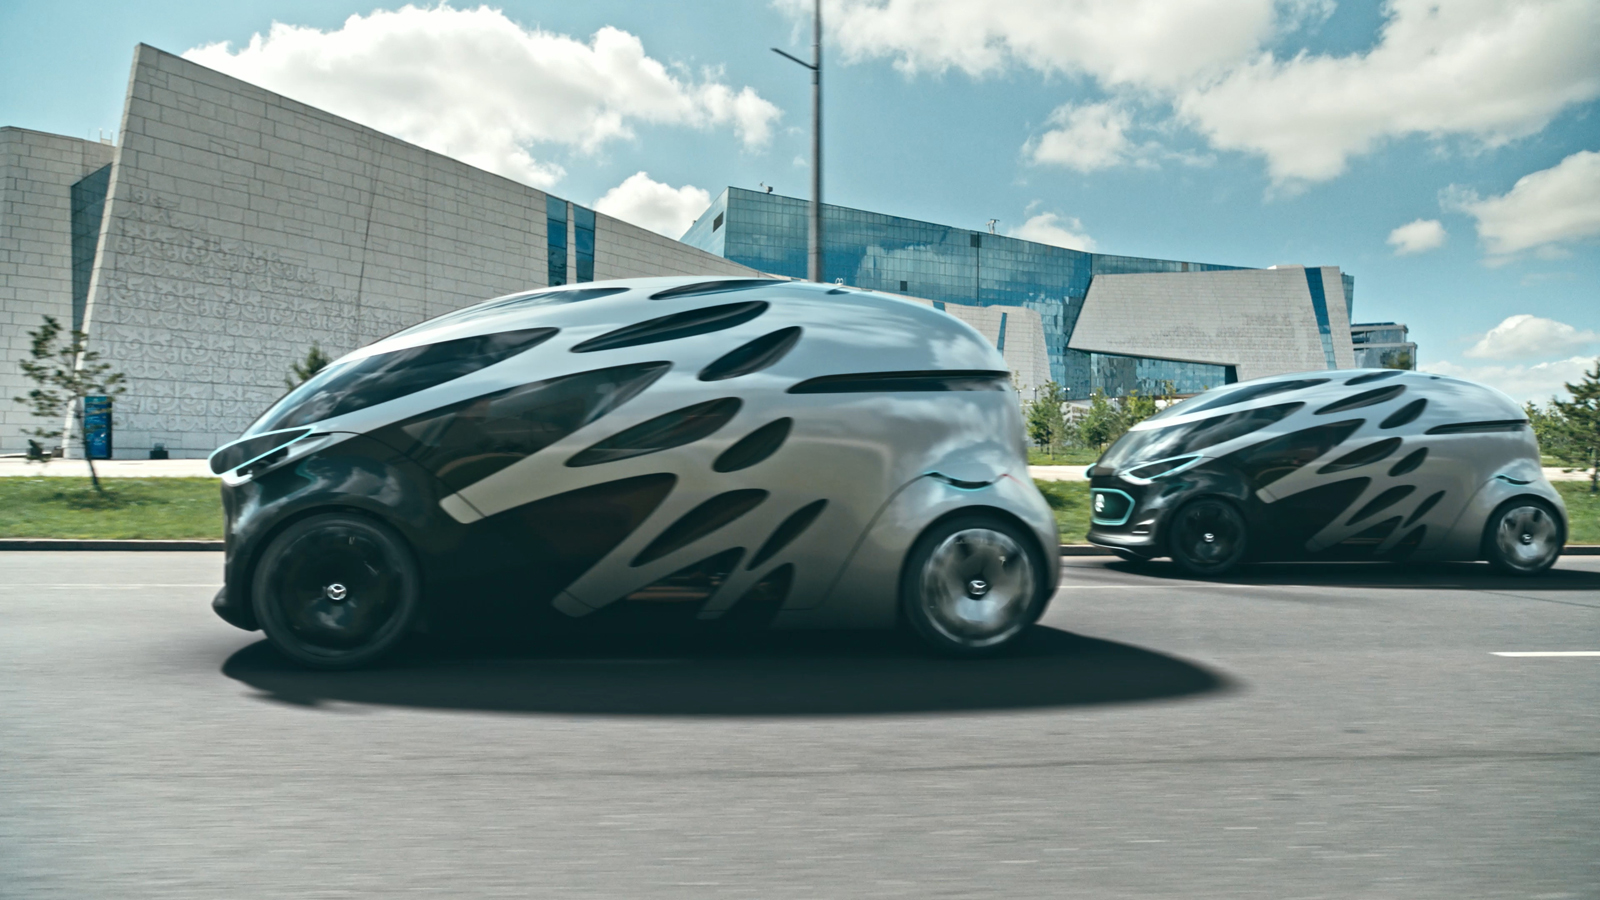 Weird Mercedes Blob Concept Has Us Scared For The Future